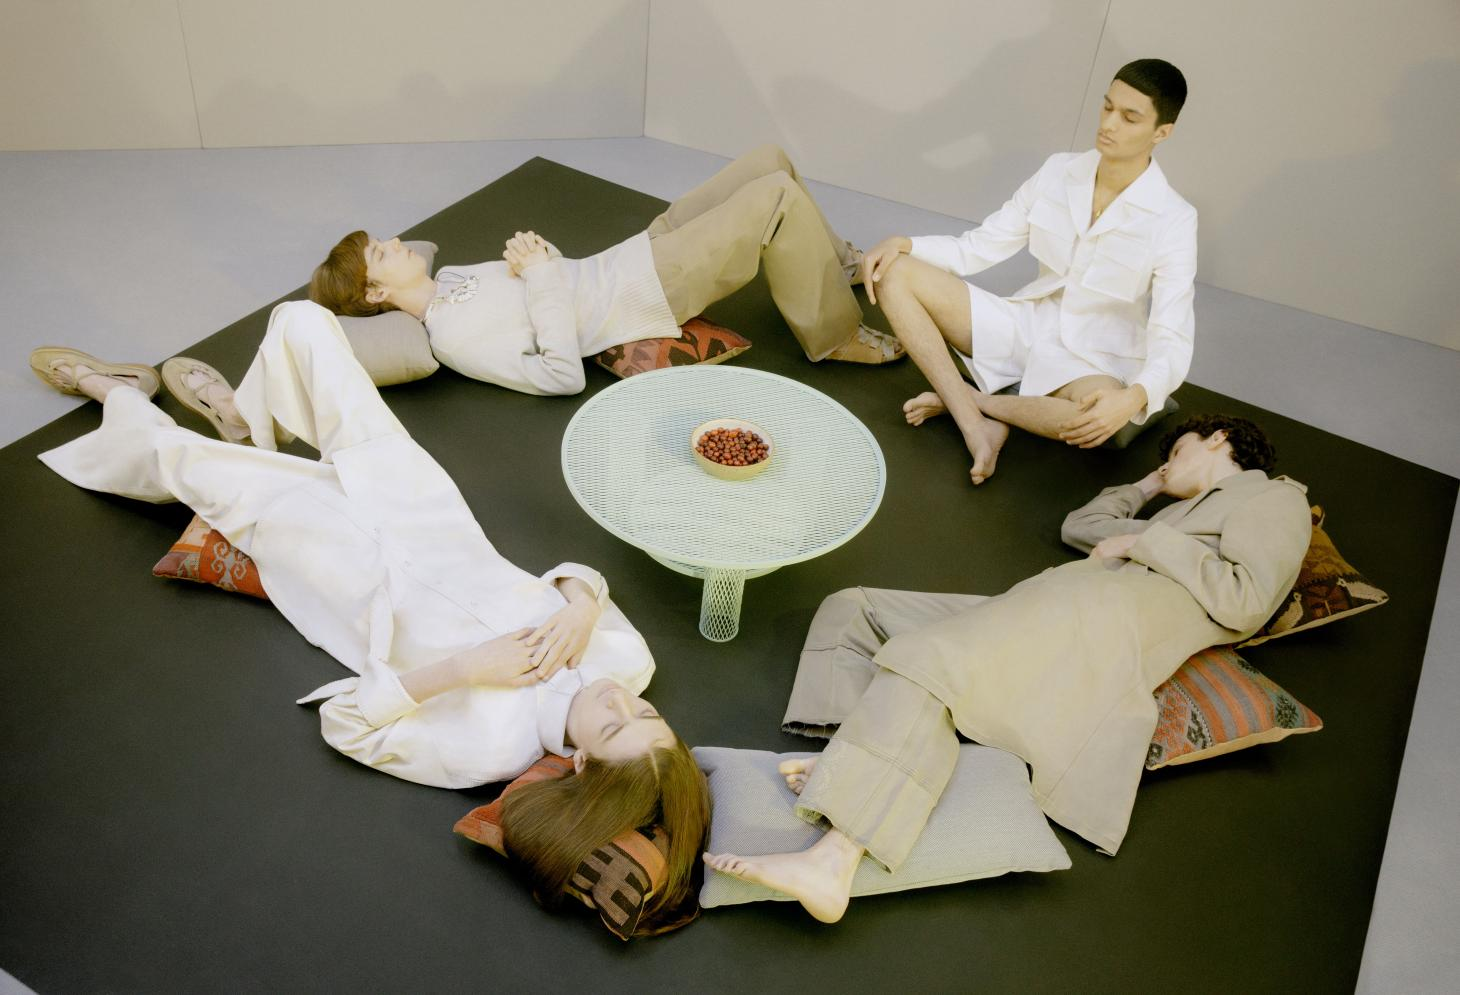 a group of men lying down in a circle